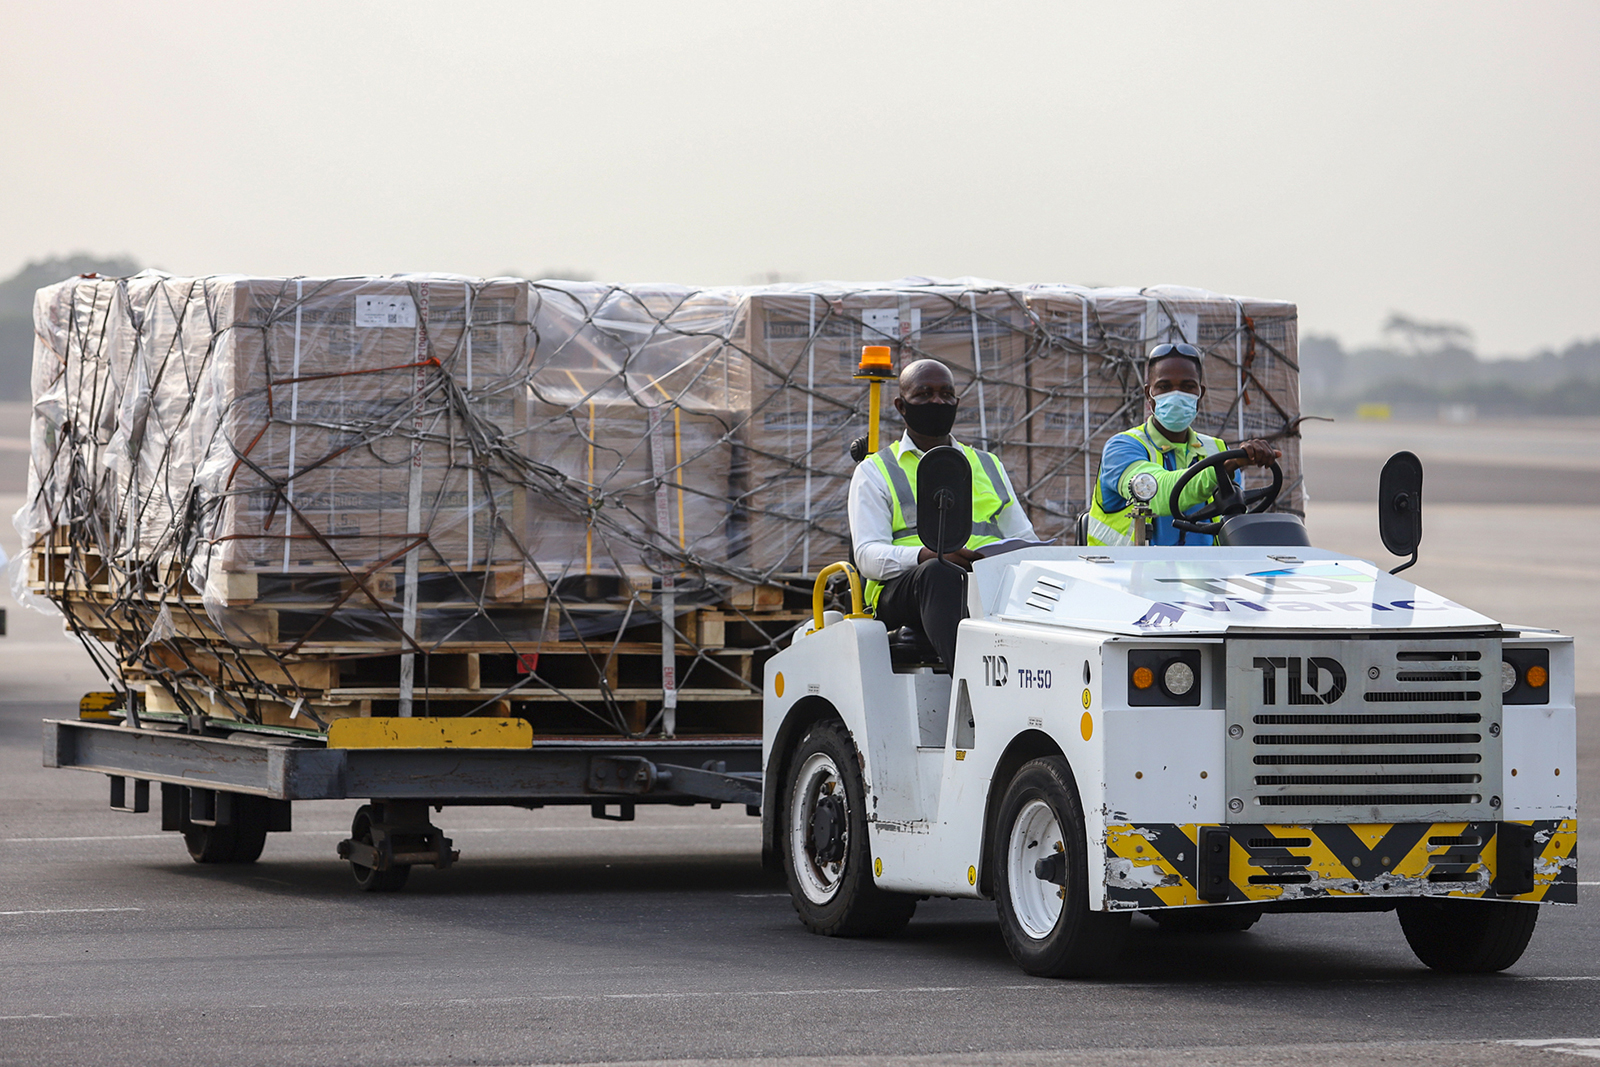 Airport workers transport a shipment of Covid-19 vaccines at the Kotoka International Airport in Accra, Ghana, on February 24